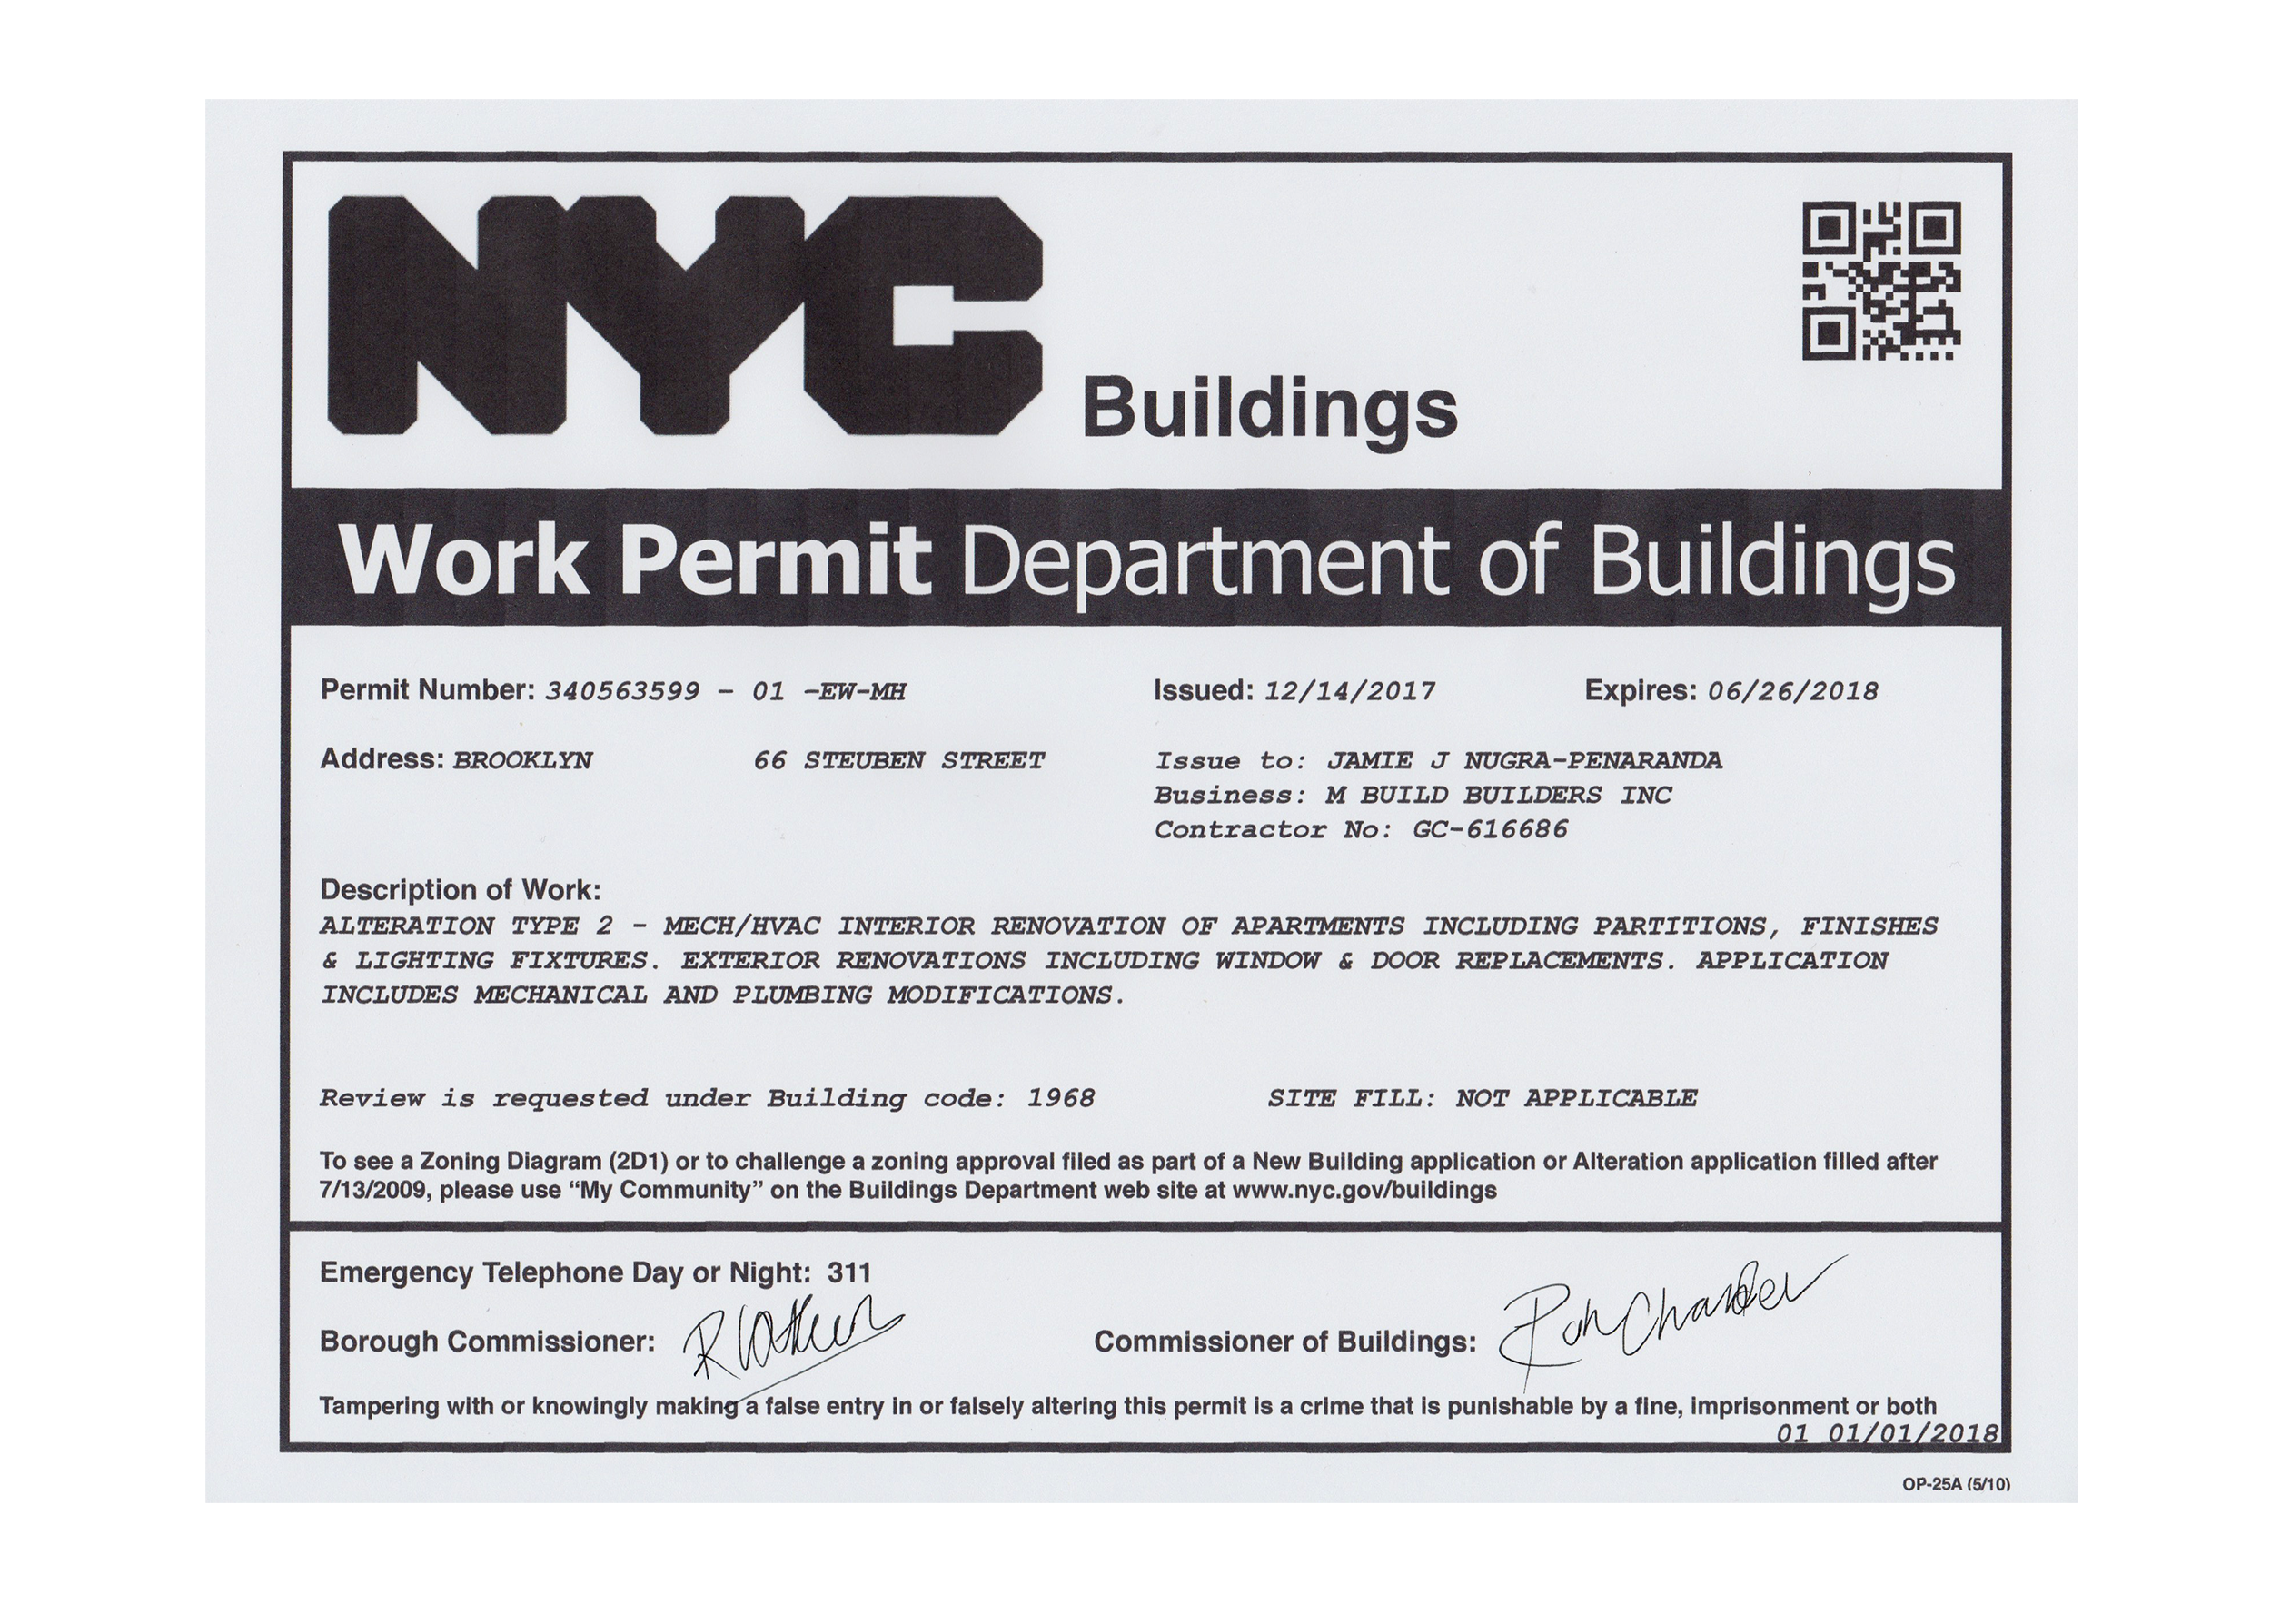 (5) Construction Work Permit  The Department of Buildings reviews construction plans to ensure that they comply with the Building Code and meet safety standards. Plans need to be approved by a licensed Engineer or Architect. This permit was issued in December 2017 and allows interior renovation of 66 Steuben Street.